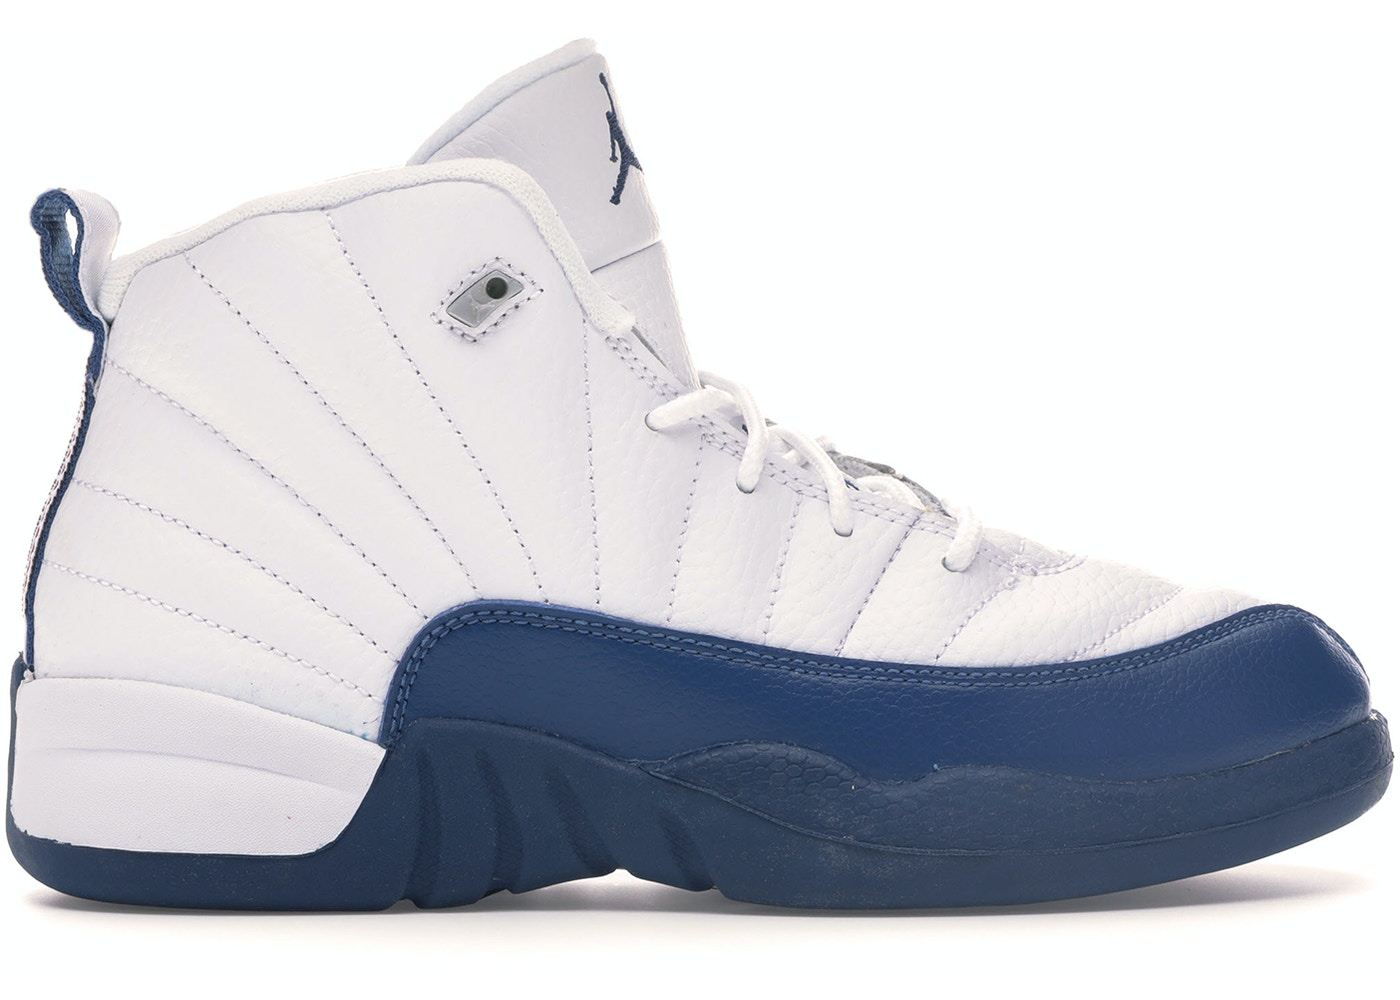 online store 8a21e fae35 Jordan 12 Retro French Blue 2016 (PS)